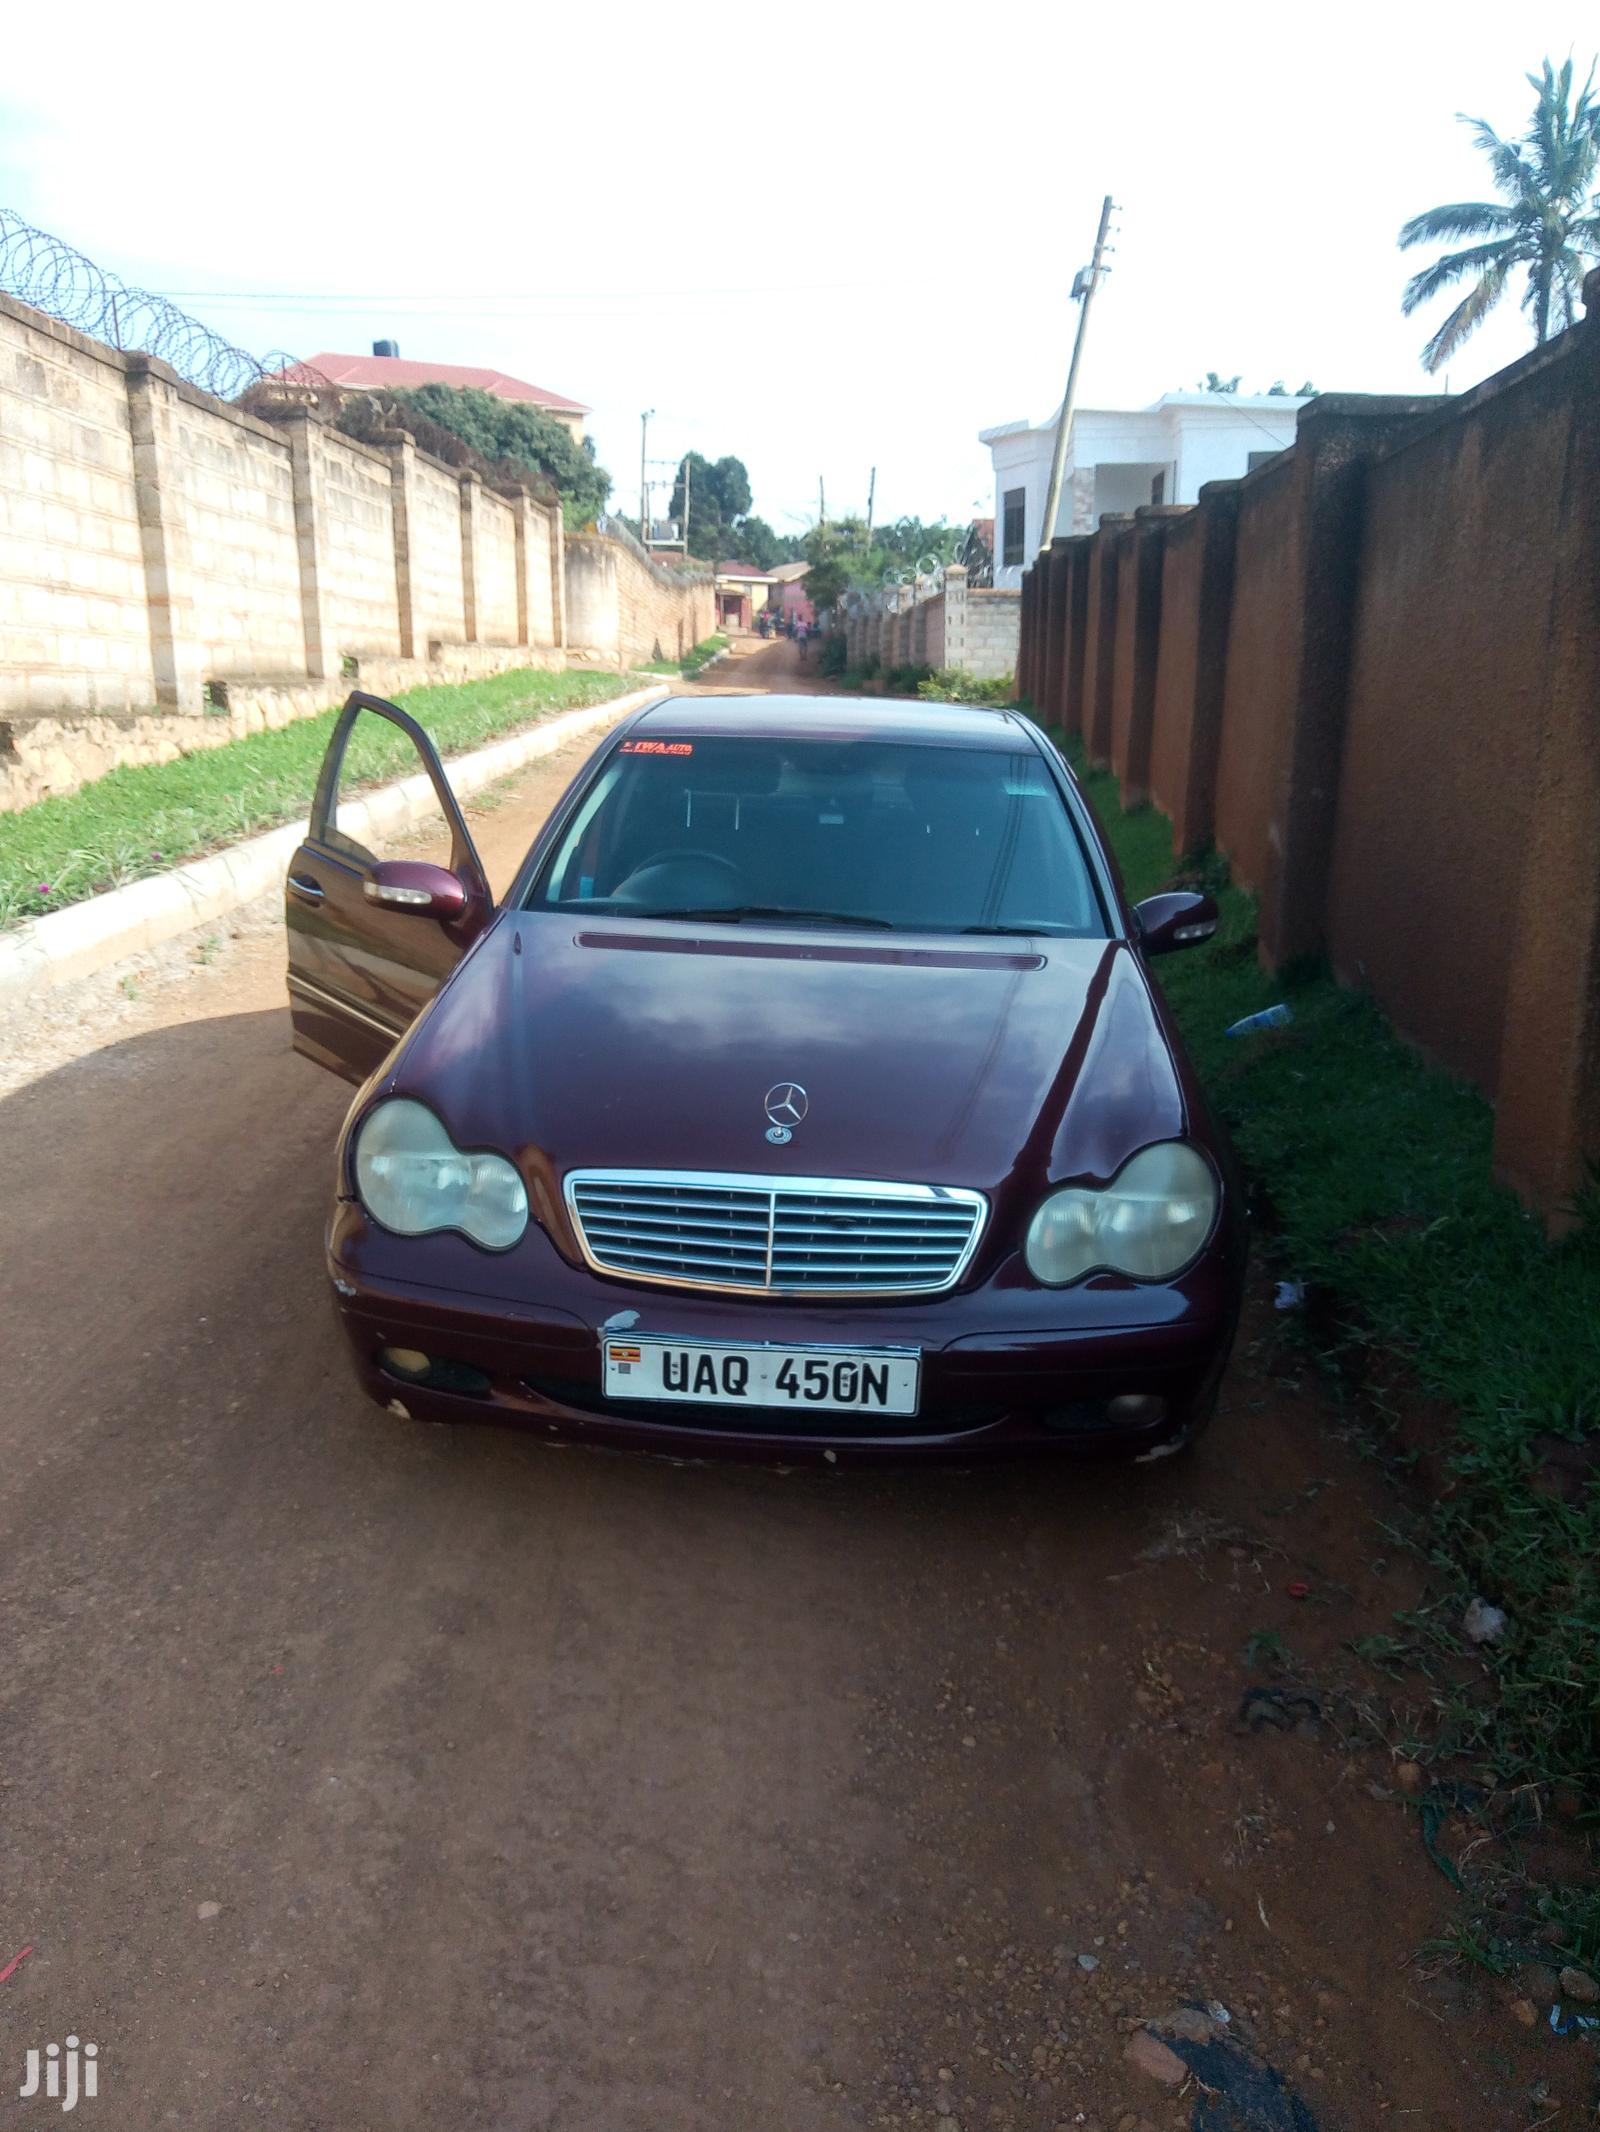 Mercedes-Benz C200 2002 Red | Cars for sale in Nairobi Central, Nairobi, Kenya